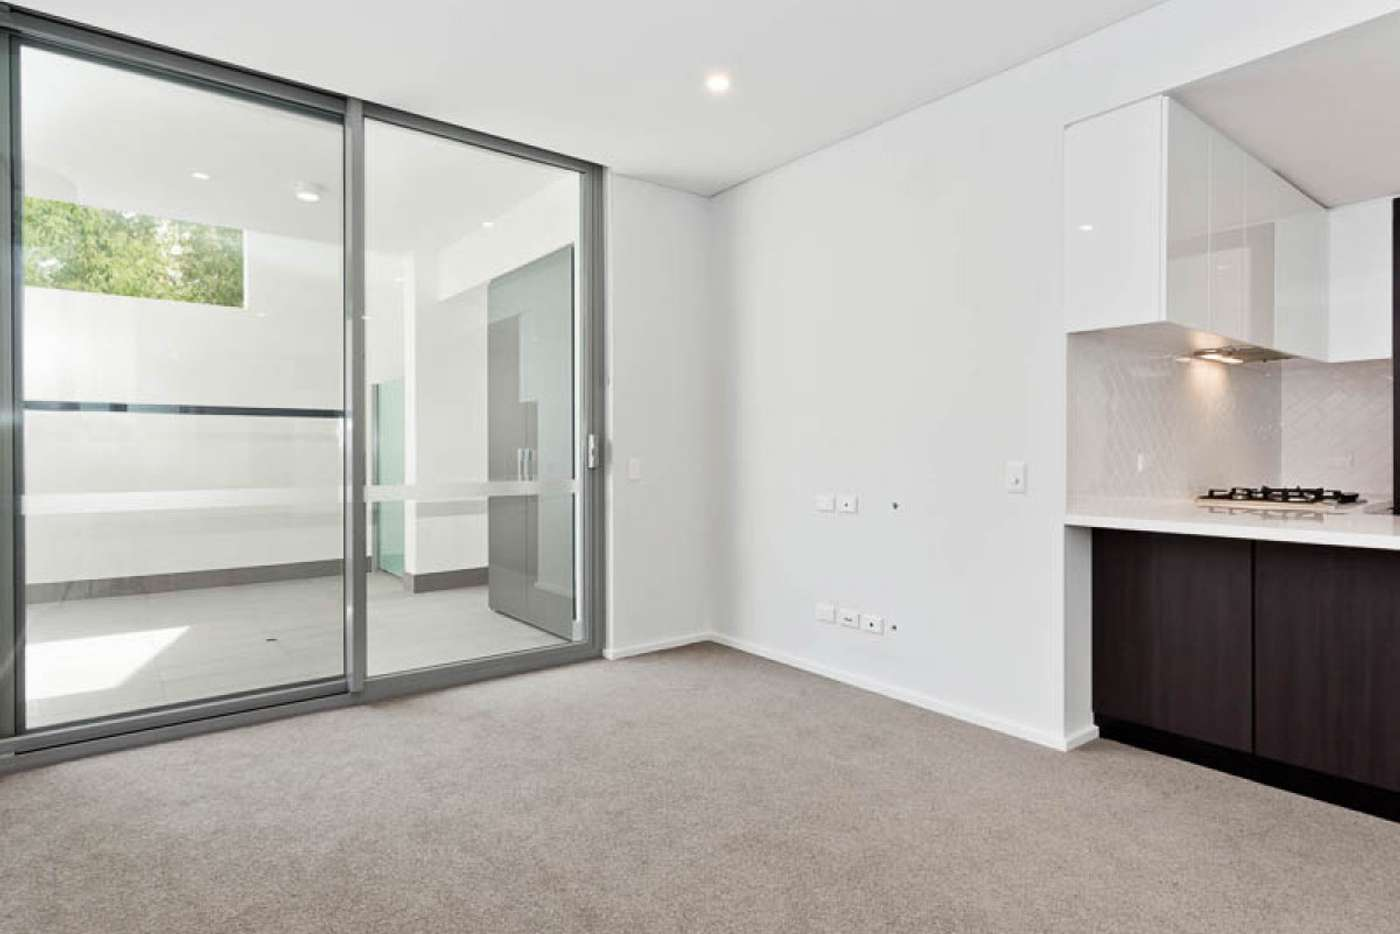 Fifth view of Homely apartment listing, 12/1 Hallam Way, Rivervale WA 6103